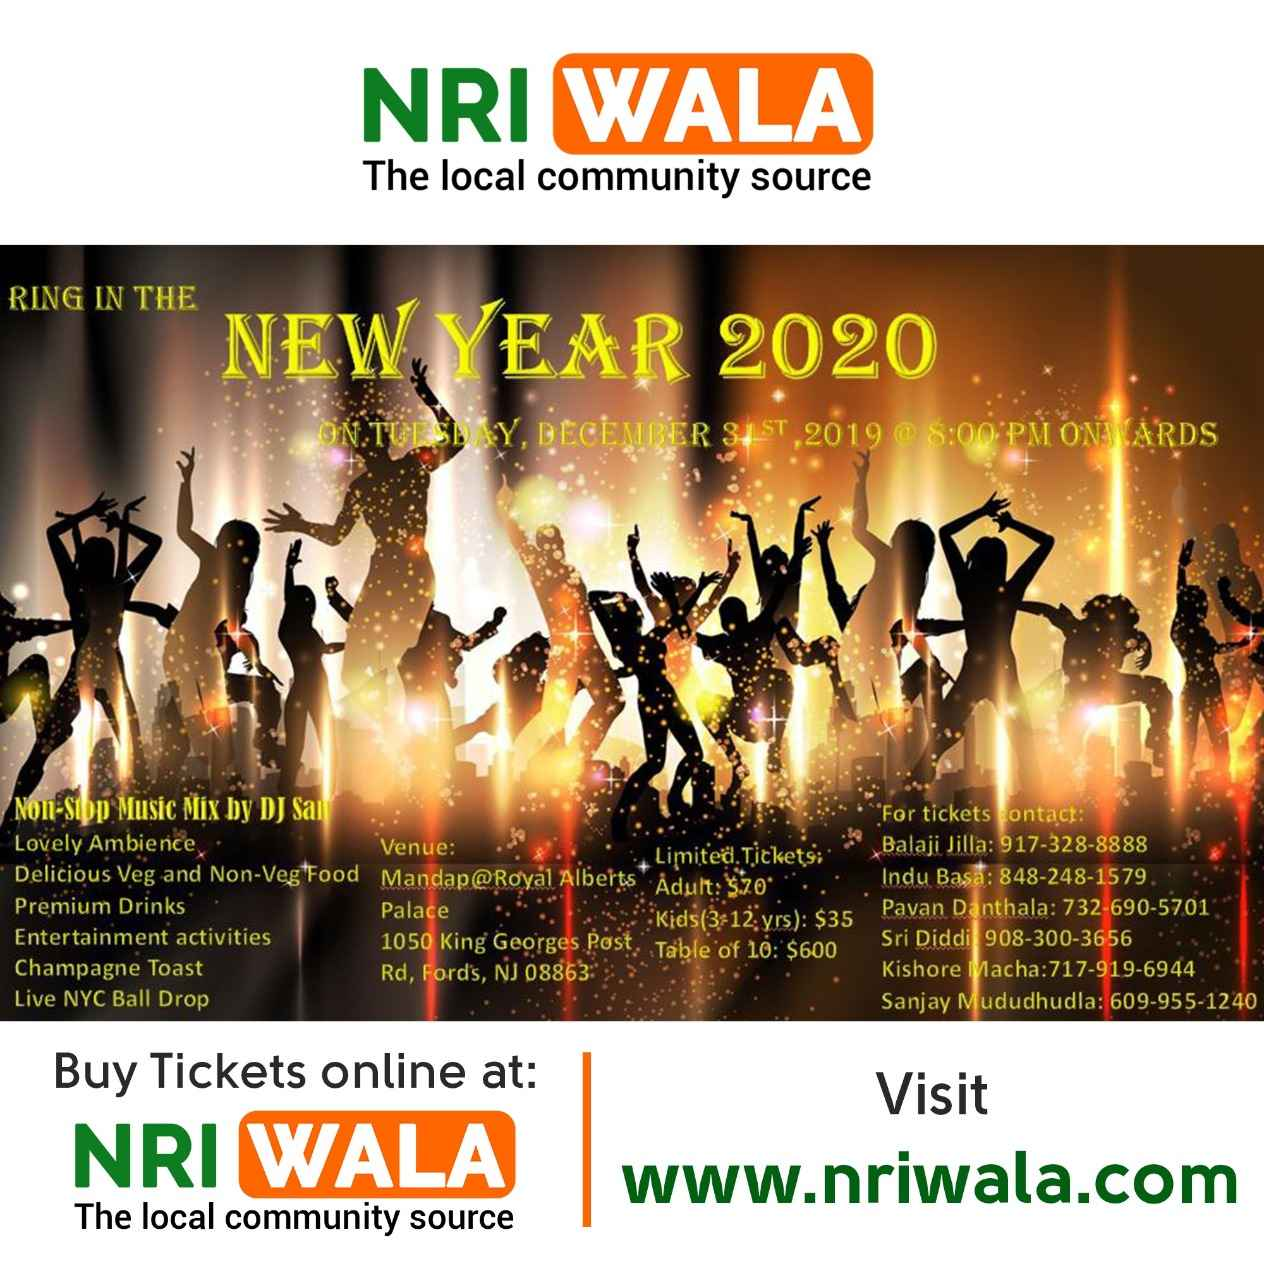 Ring in the NEW YEAR 2020